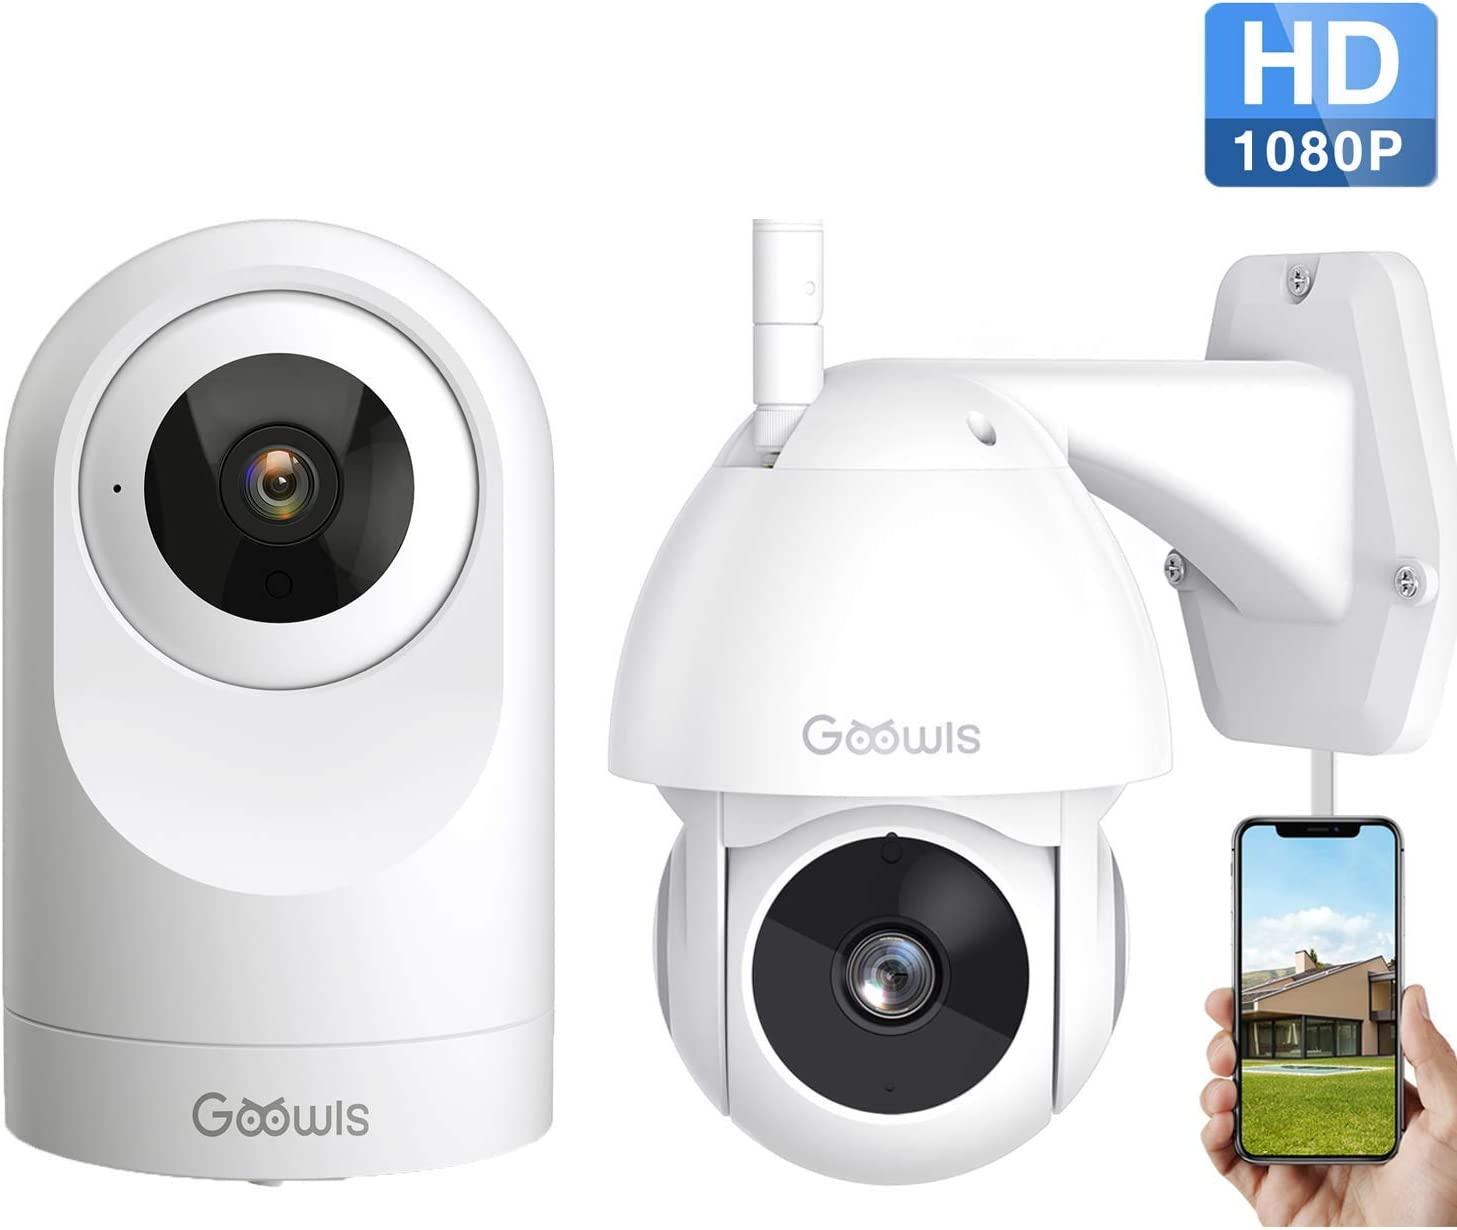 Goowls 1080P Outdoor and Indoor WiFi Home Security Camera Plug-in with Waterproof Night Vision 2-Way Audio Motion Detection Activity Alert Cloud Service Compatible with Alexa